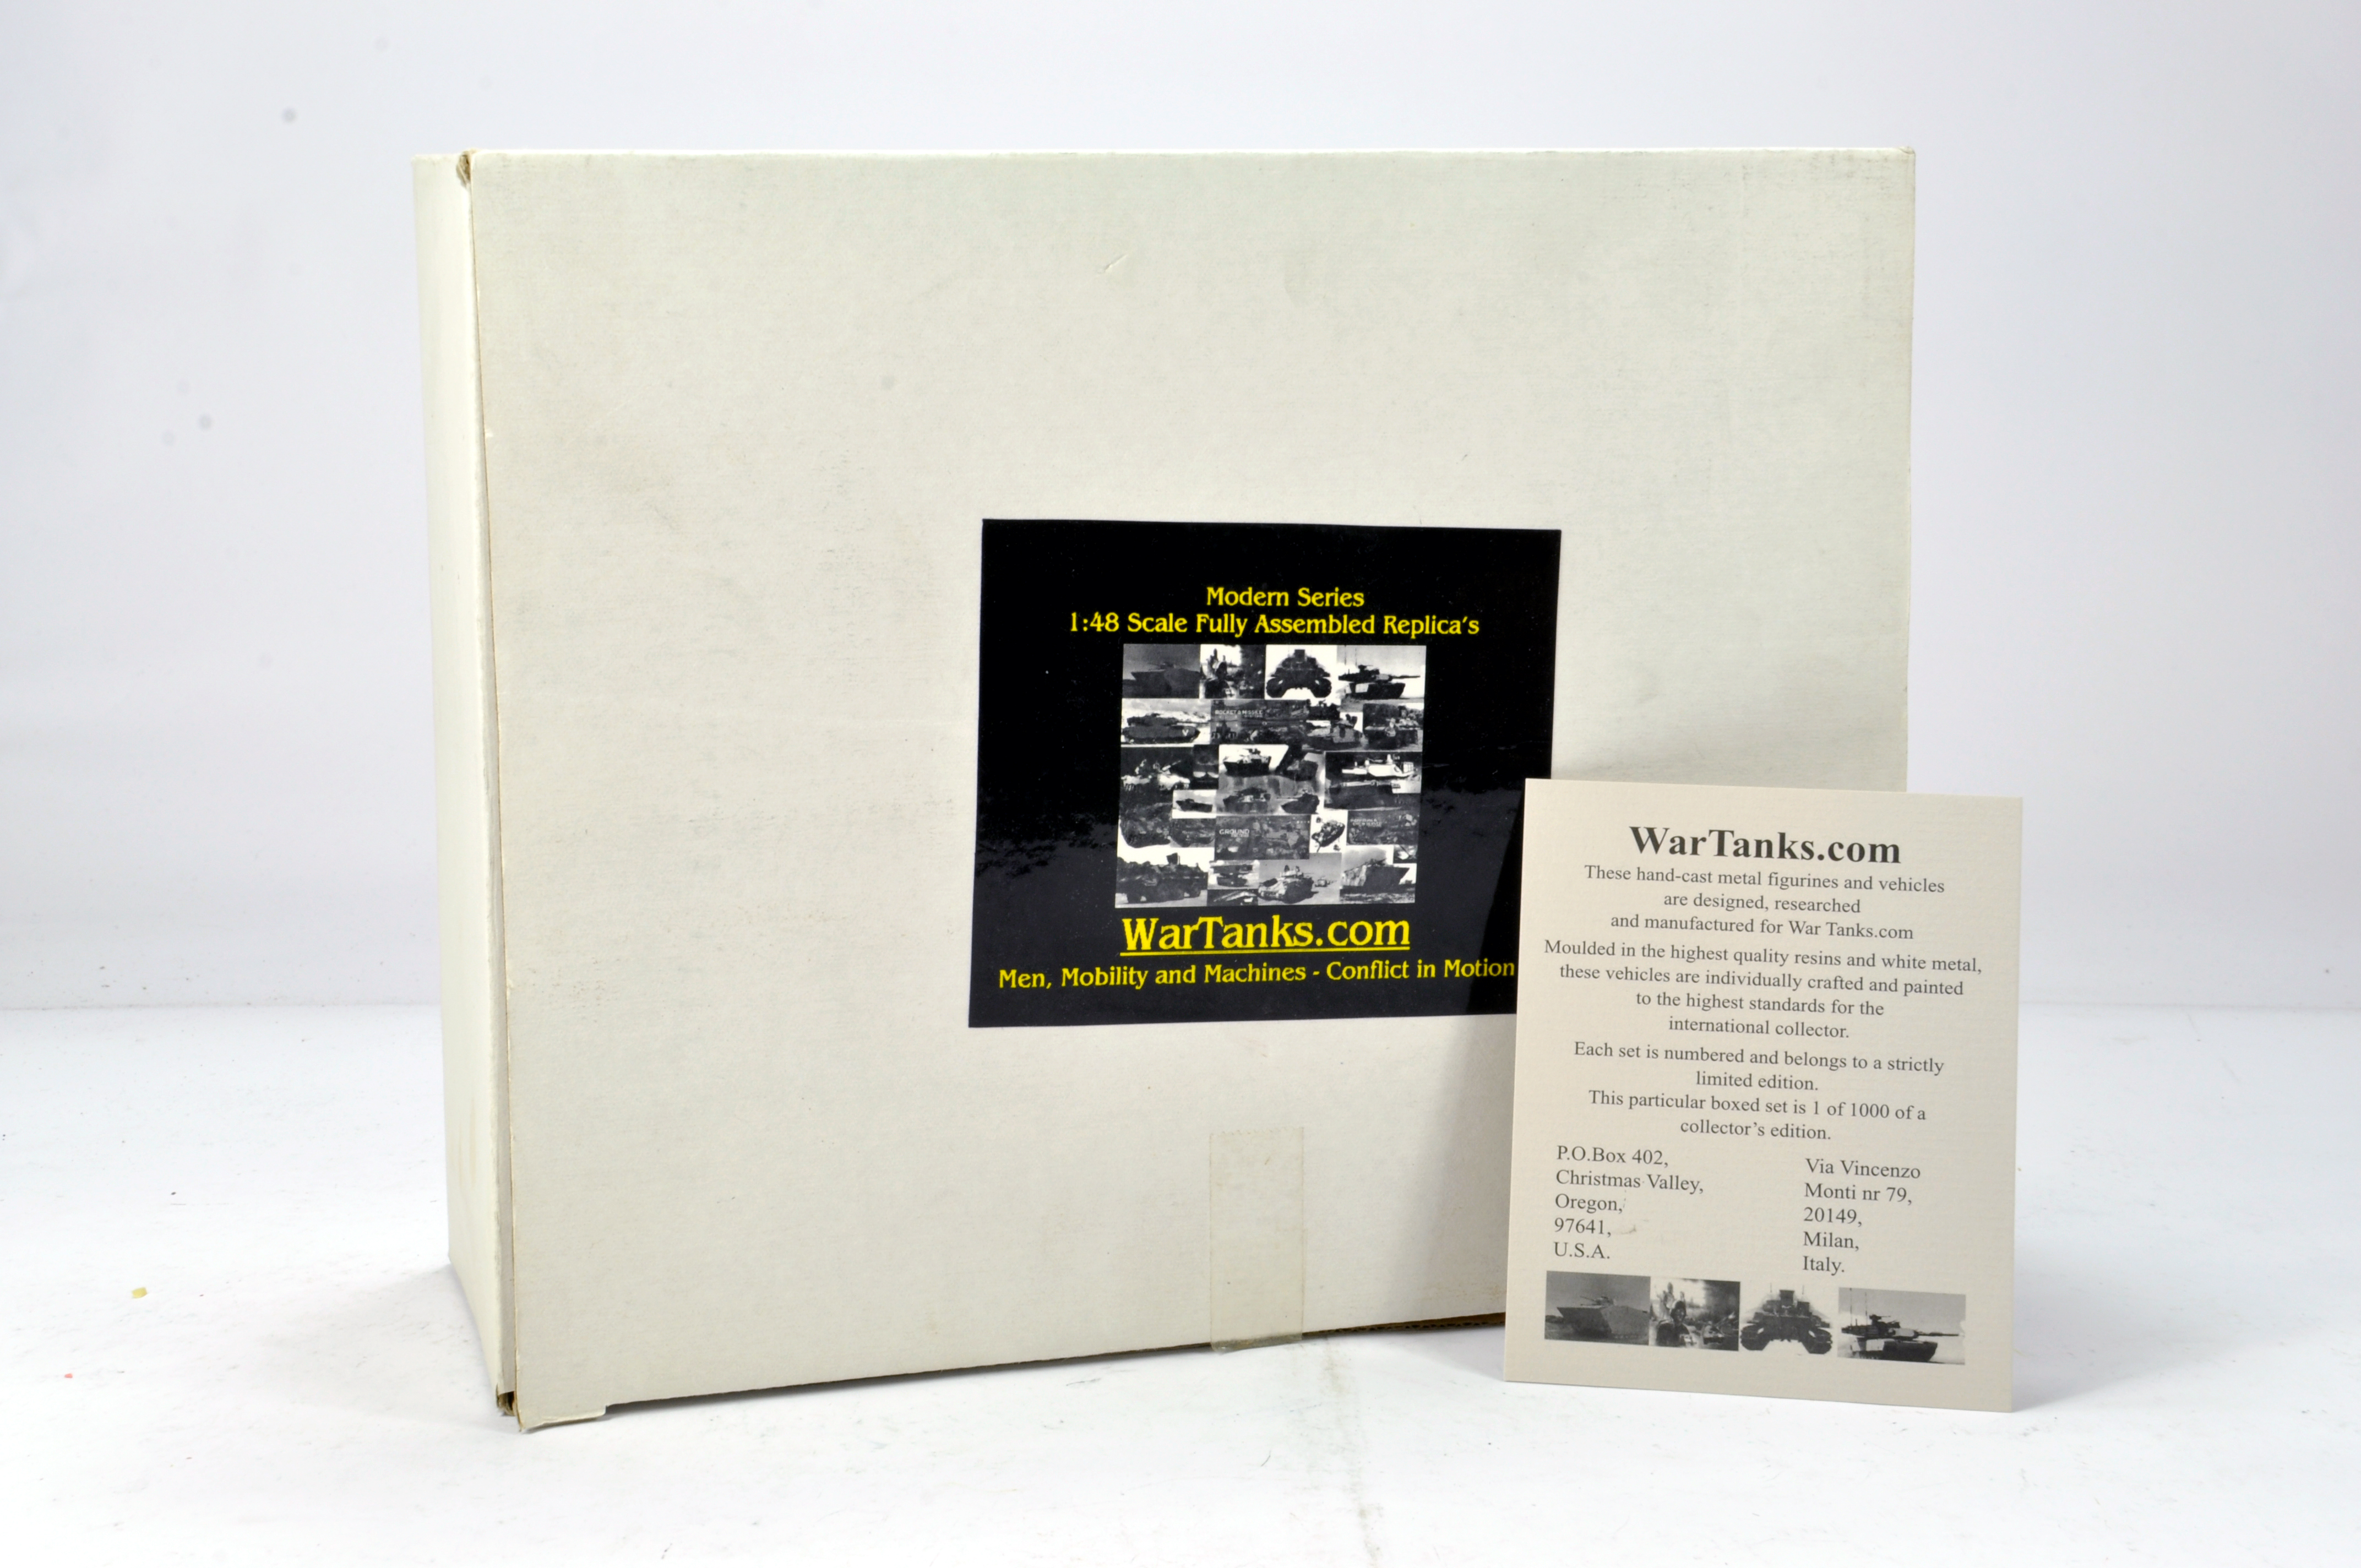 Lot 1130 - Wartanks.com 1/48 Resin White Metal issue comprising limited edition Road to Kuwait T55 Tank. NM